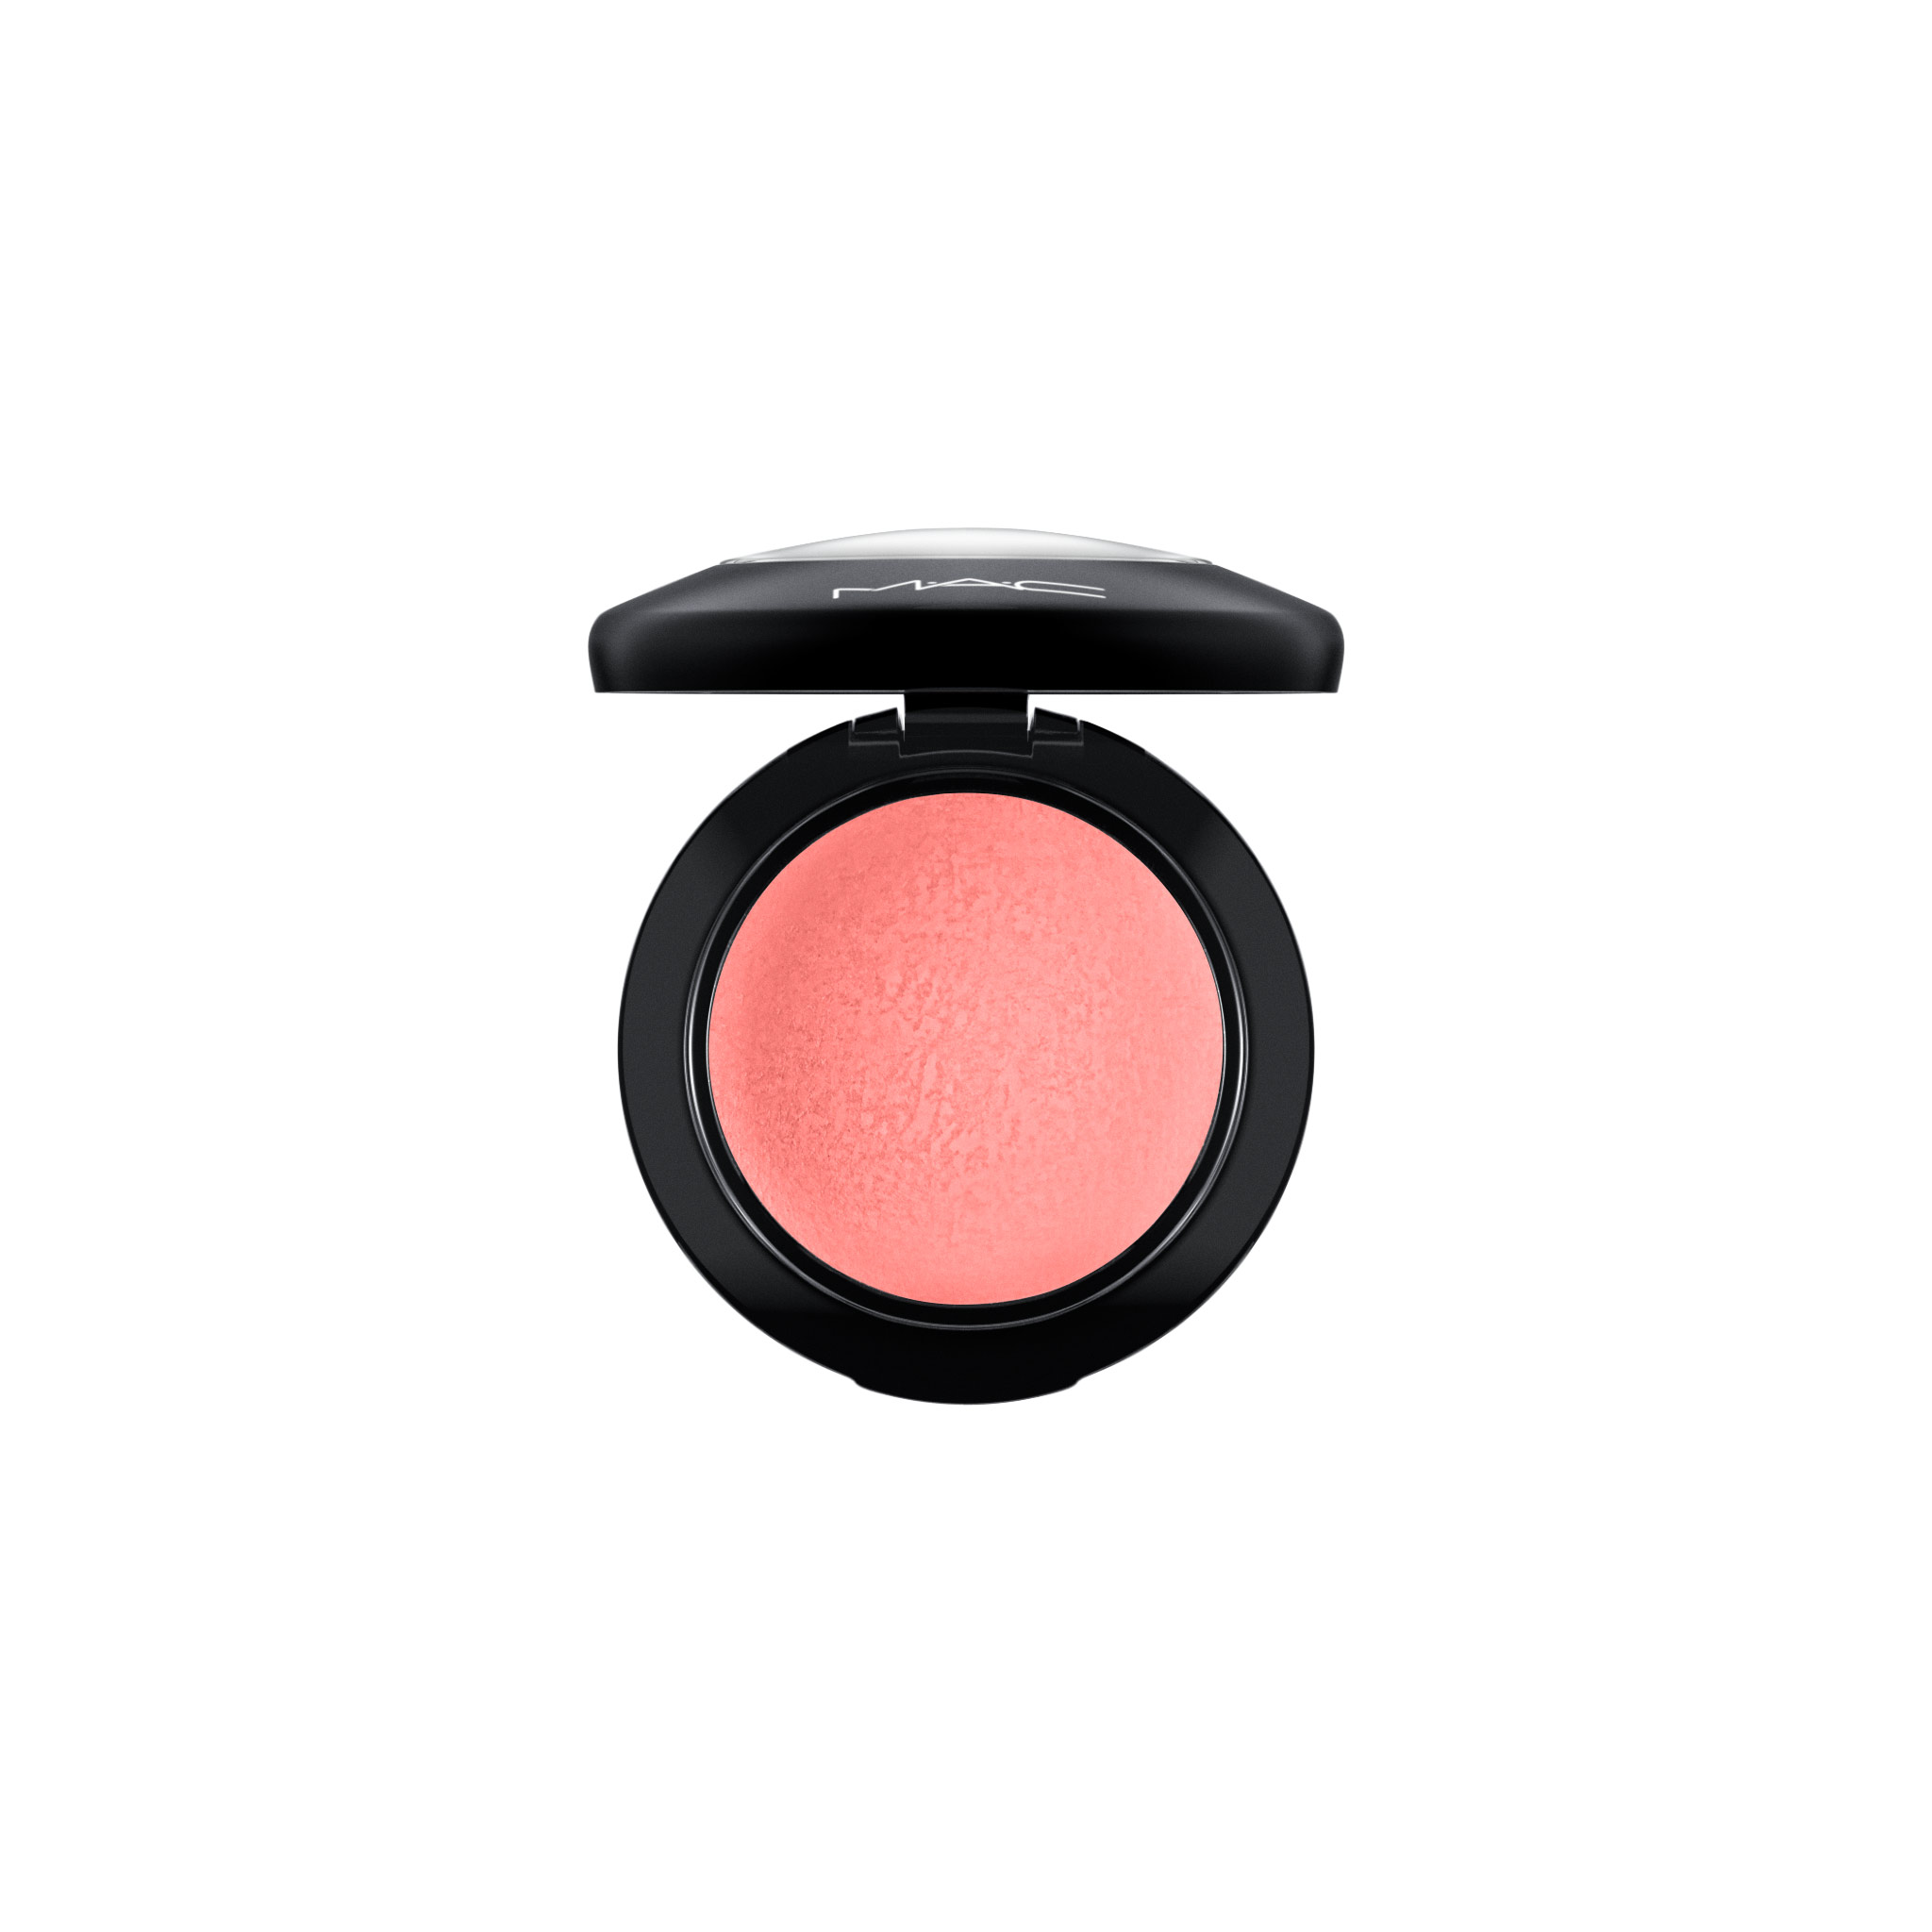 An image of MAC Mineralize Blush 3.5g Group 2 - HEY CORAL HEY